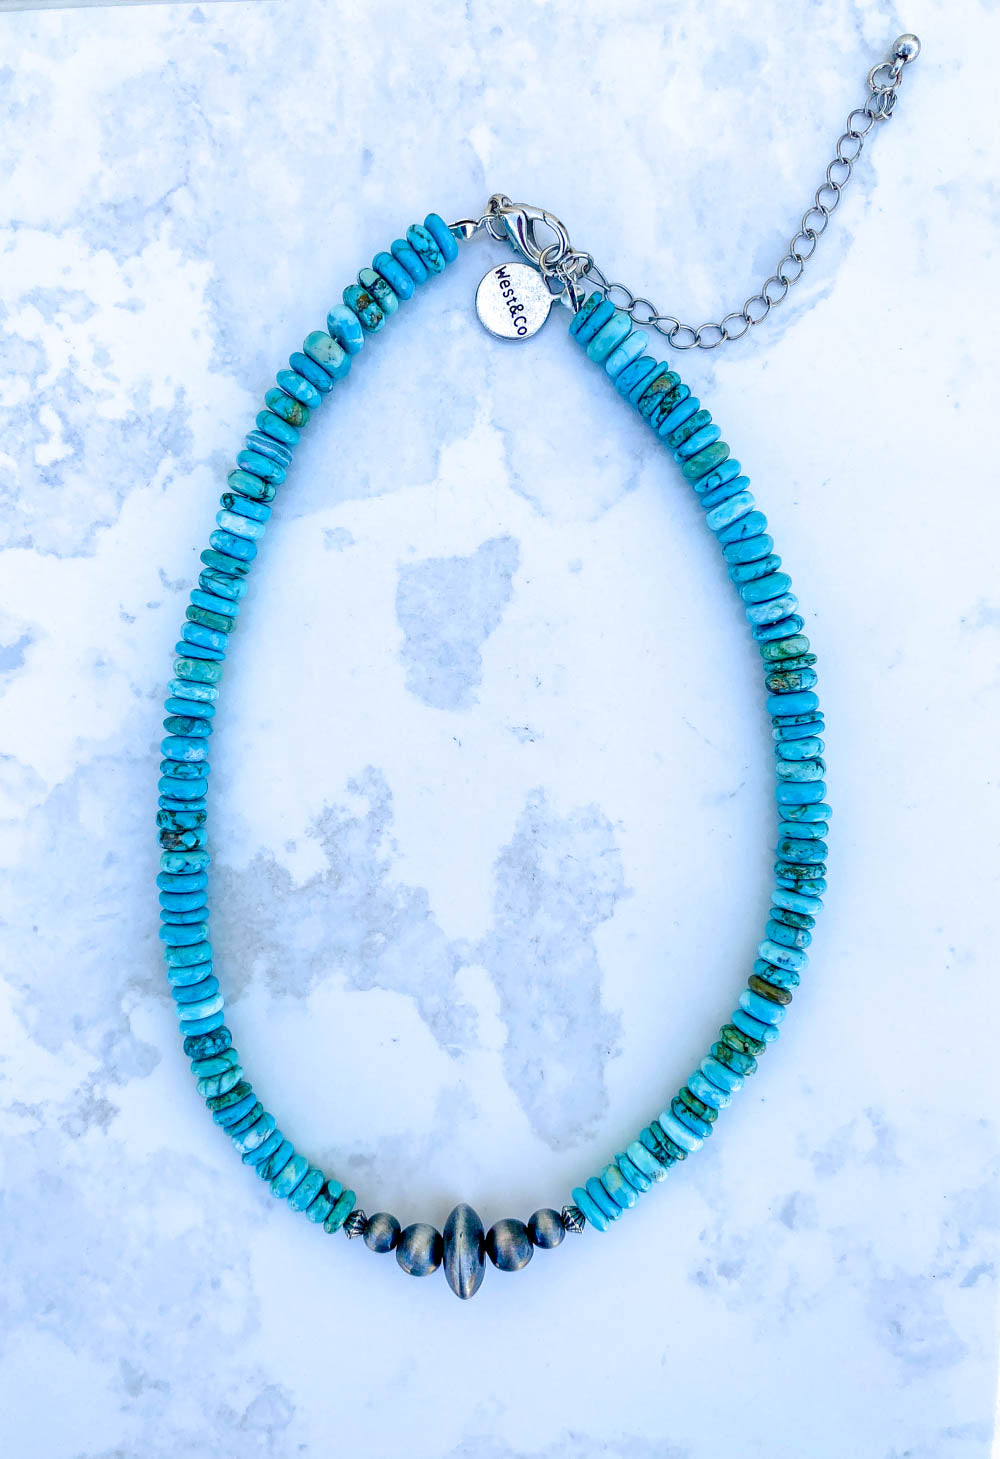 14in Natural Turquoise Beaded Choker with Smoke Pearl Accent